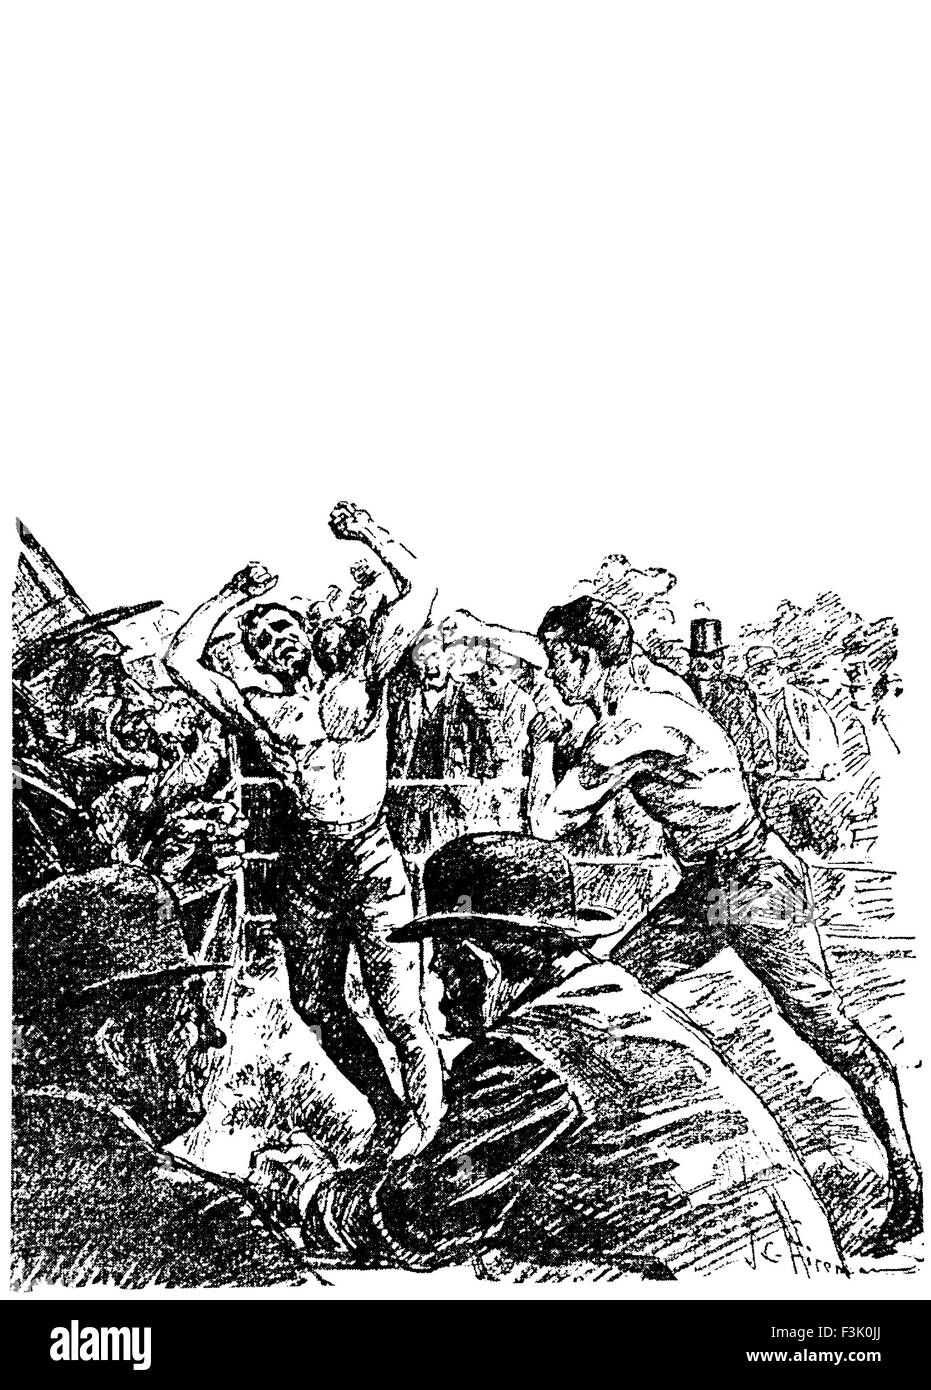 Vintage newspaper illustration depicting the famous bare-knuckle fight for the heavyweight Championship of America - Stock Image